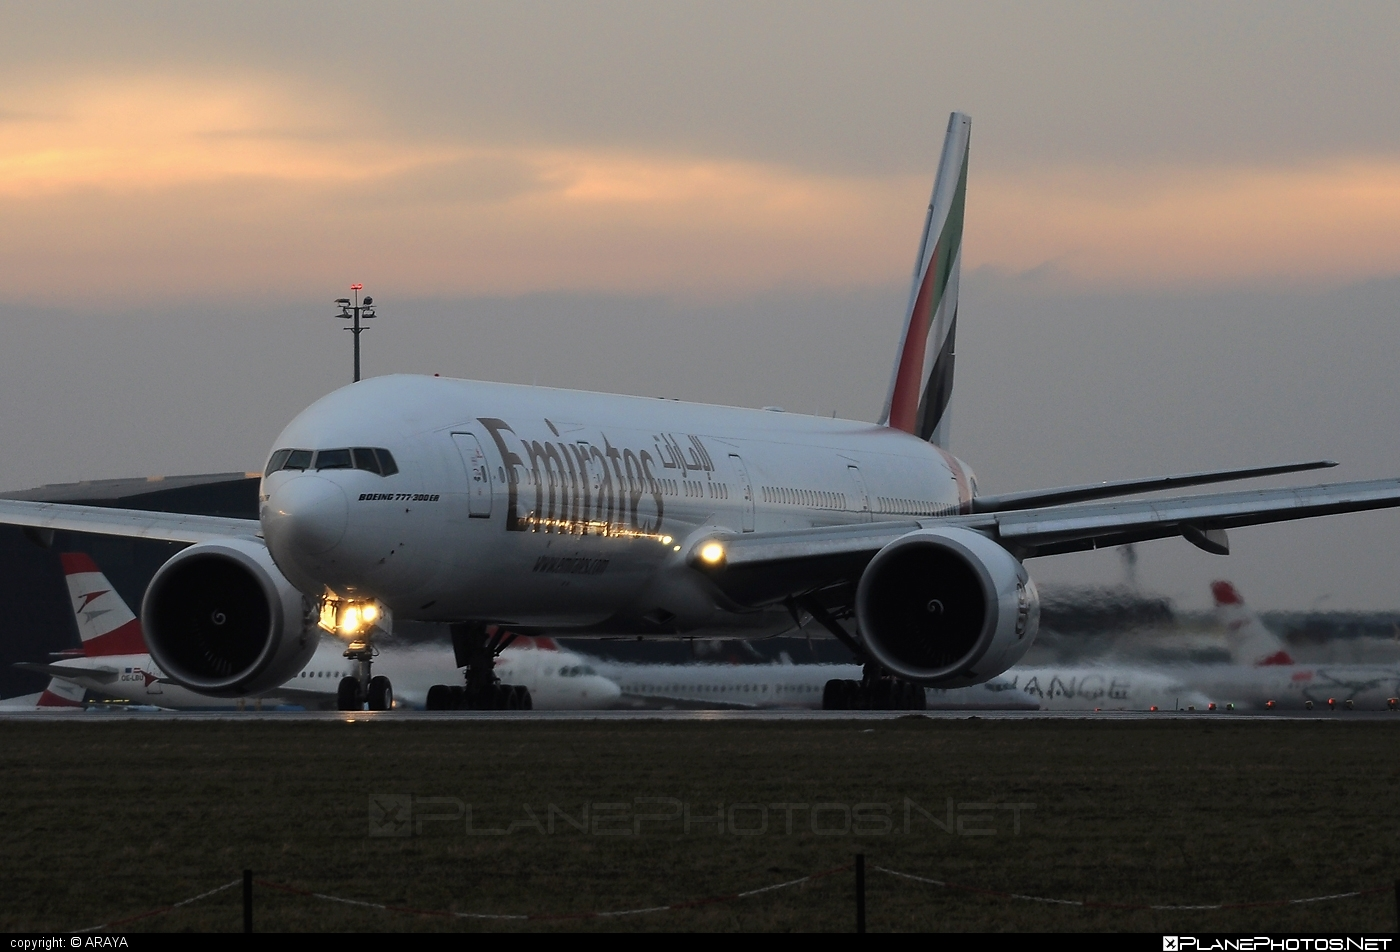 Boeing 777-300ER - A6-ECH operated by Emirates #b777 #b777er #boeing #boeing777 #emirates #tripleseven